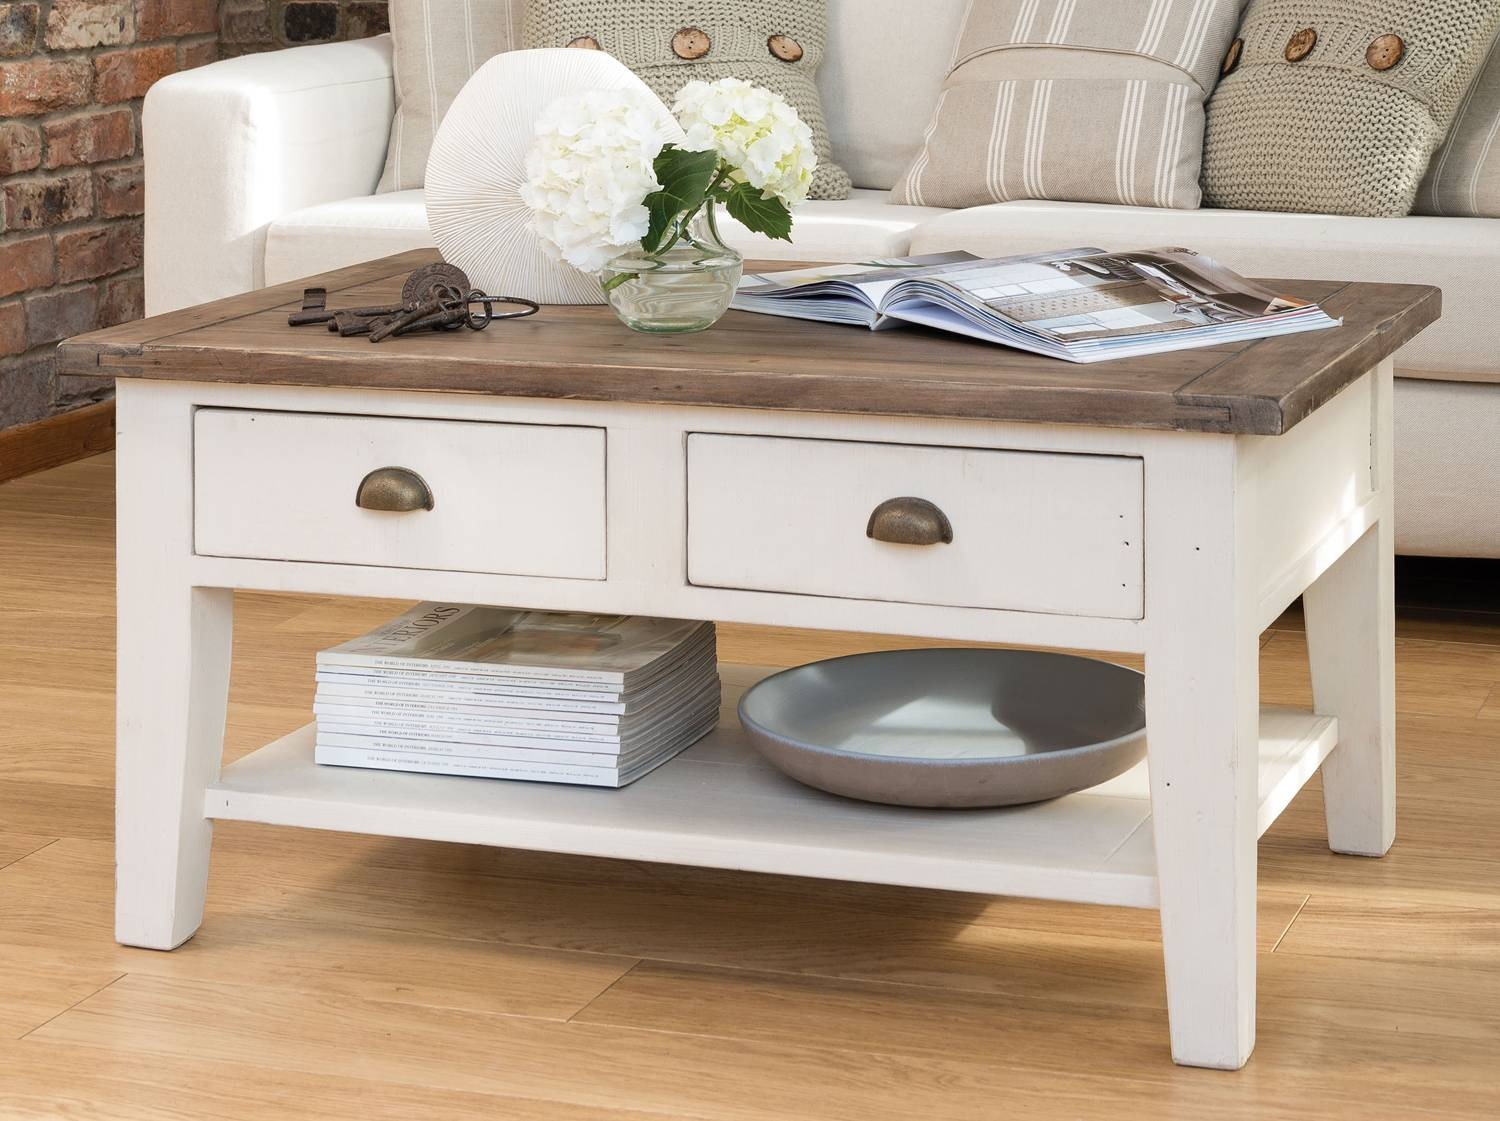 Coffee Table: Astonishing French Country Coffee Table Ideas within White Cottage Style Coffee Tables (Image 6 of 30)